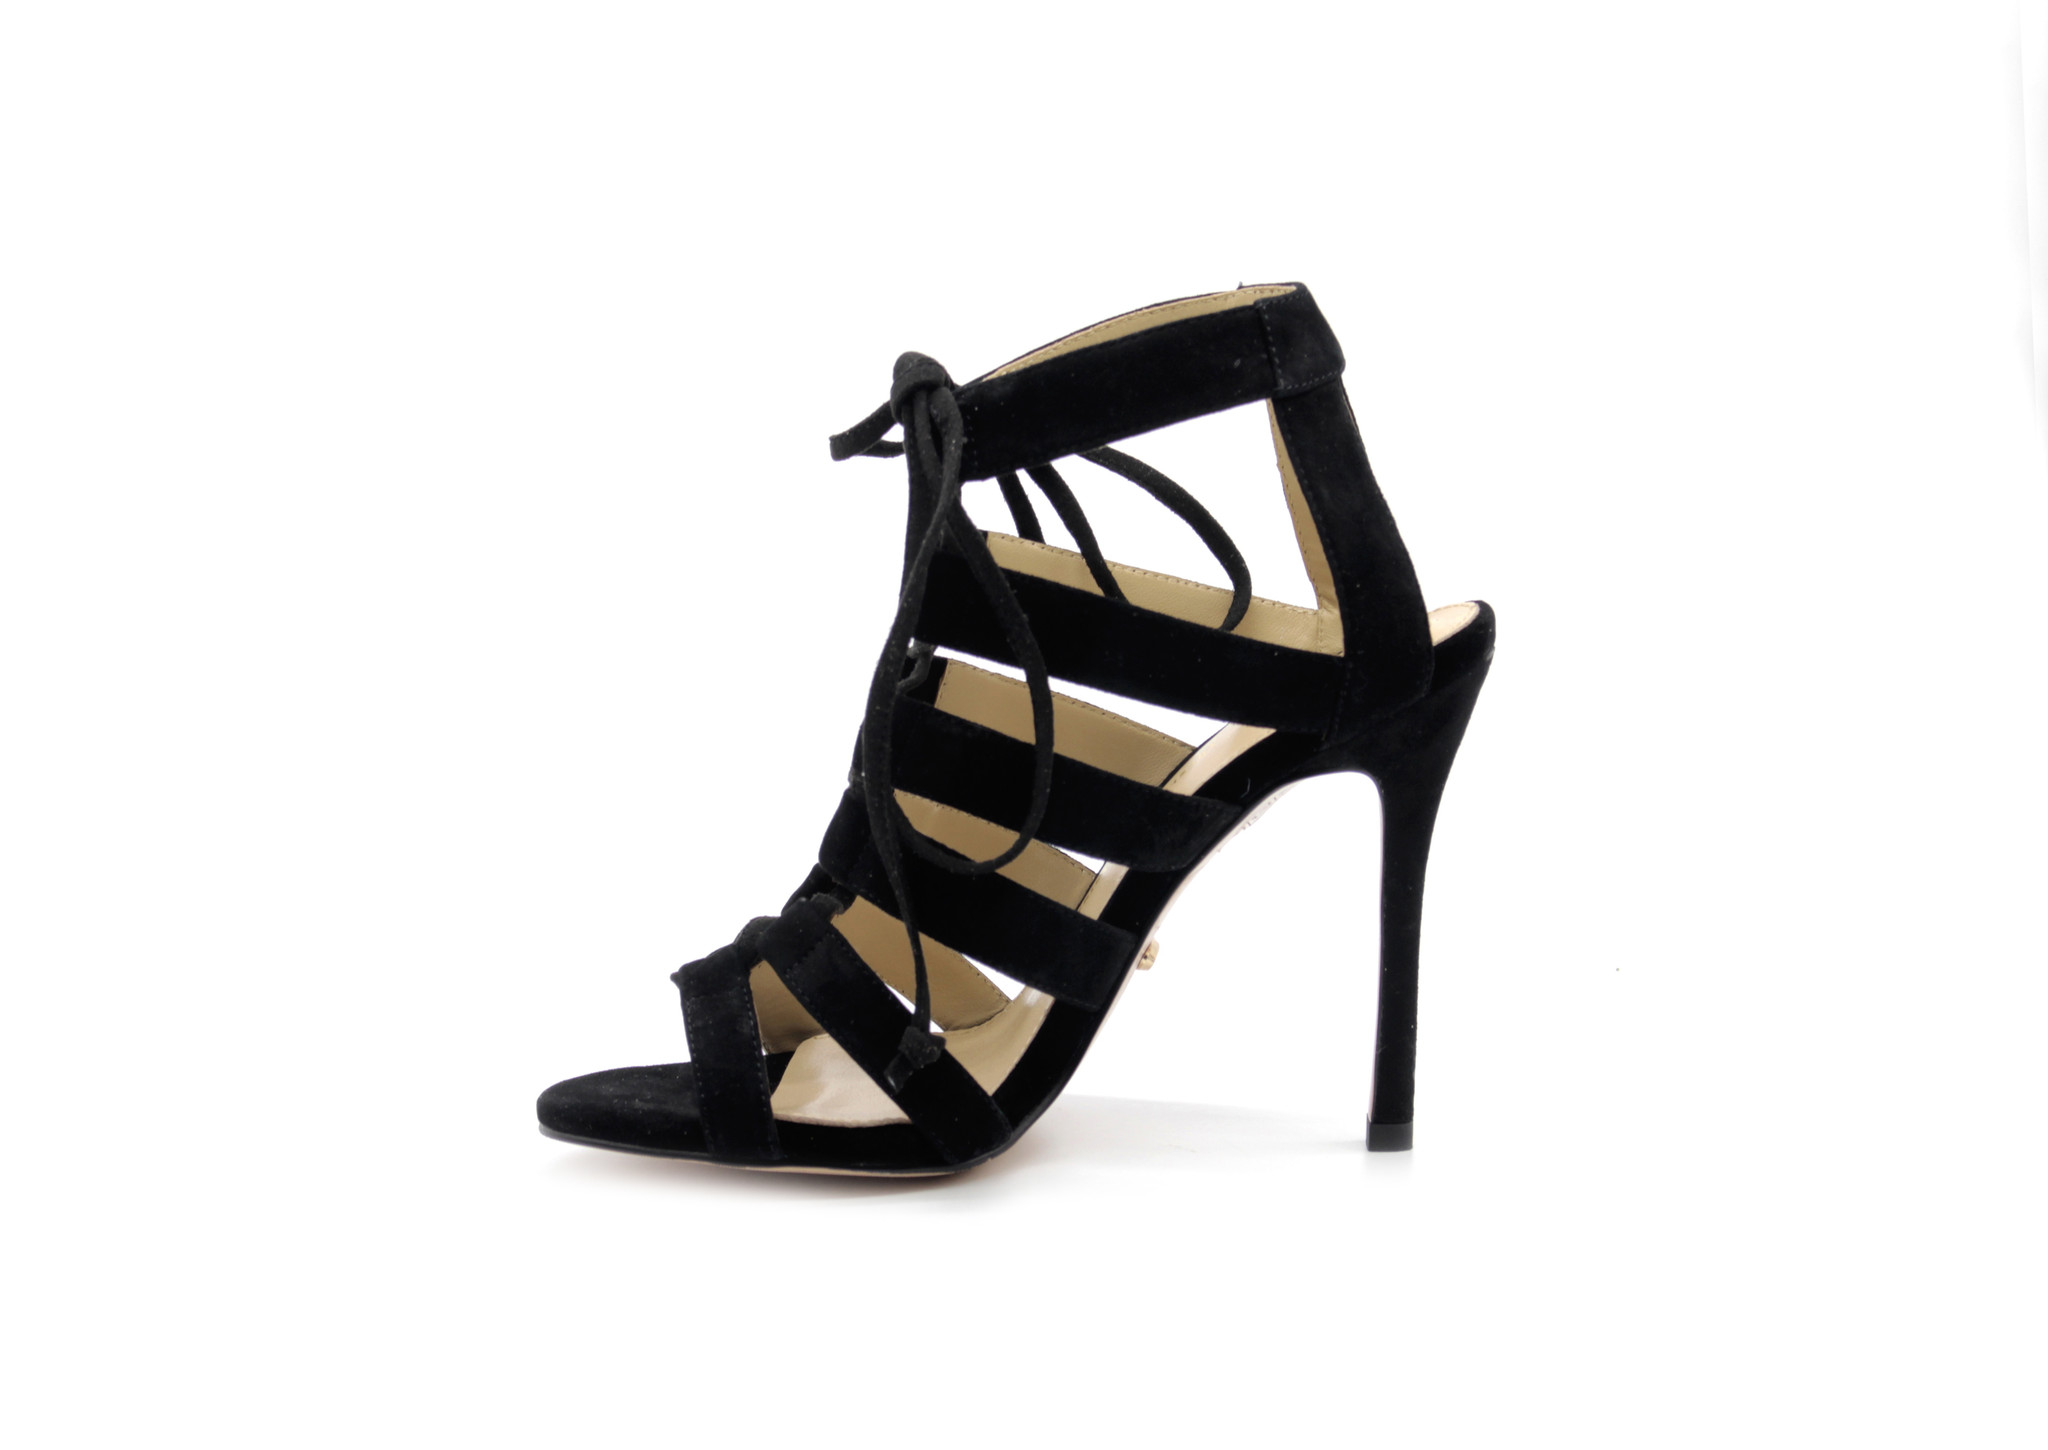 Inch Heels - Black Suede Strappy Sandals